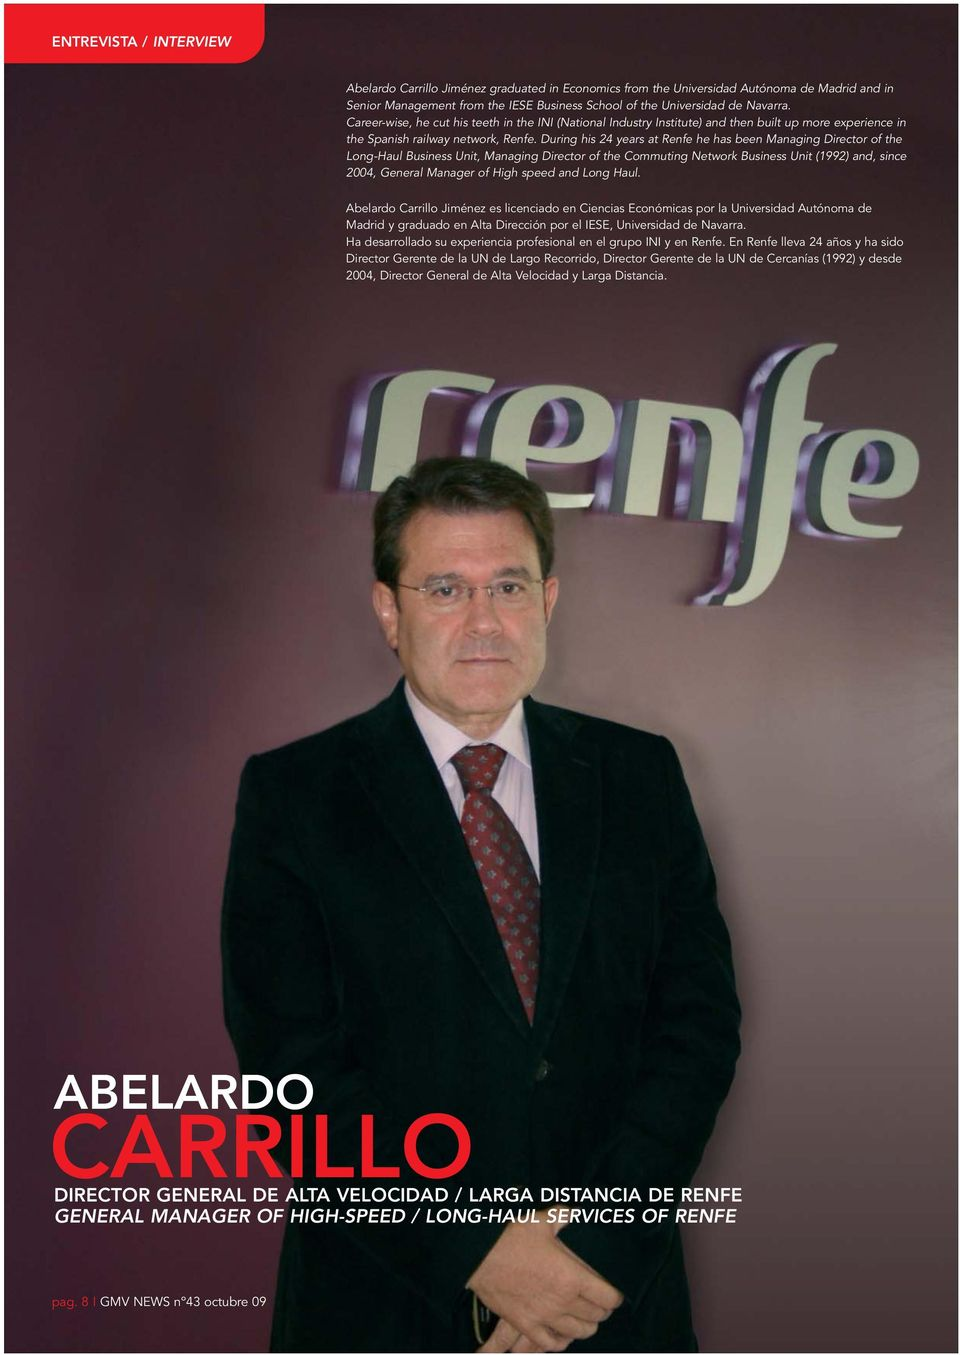 During his 24 years at Renfe he has been Managing Director of the Long-Haul Business Unit, Managing Director of the Commuting Network Business Unit (1992) and, since 2004, General Manager of High